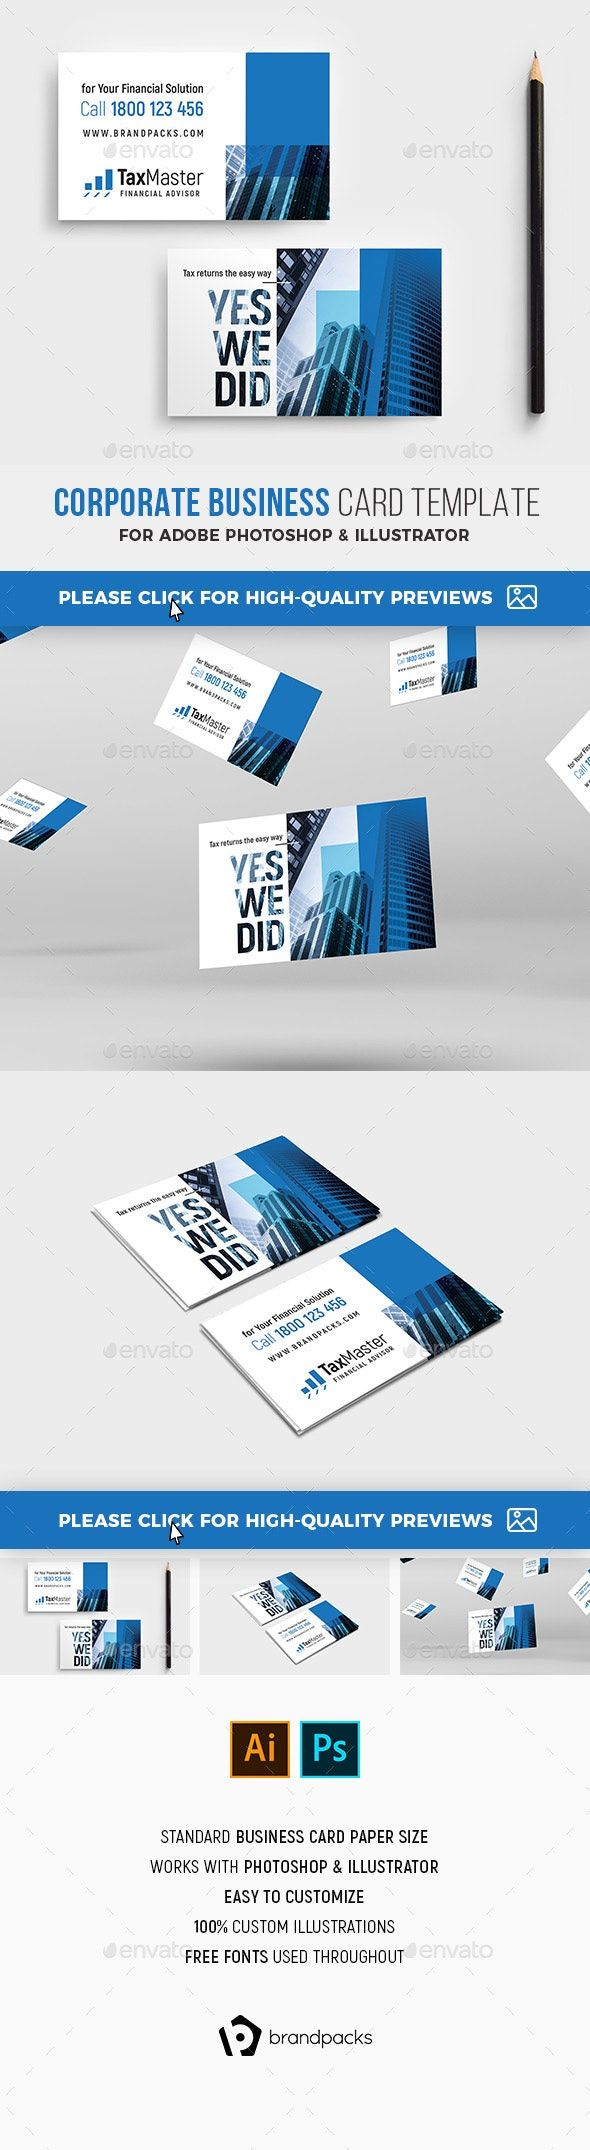 Business Card Corporate Business Card Cool Business Cards Business Card Template Psd